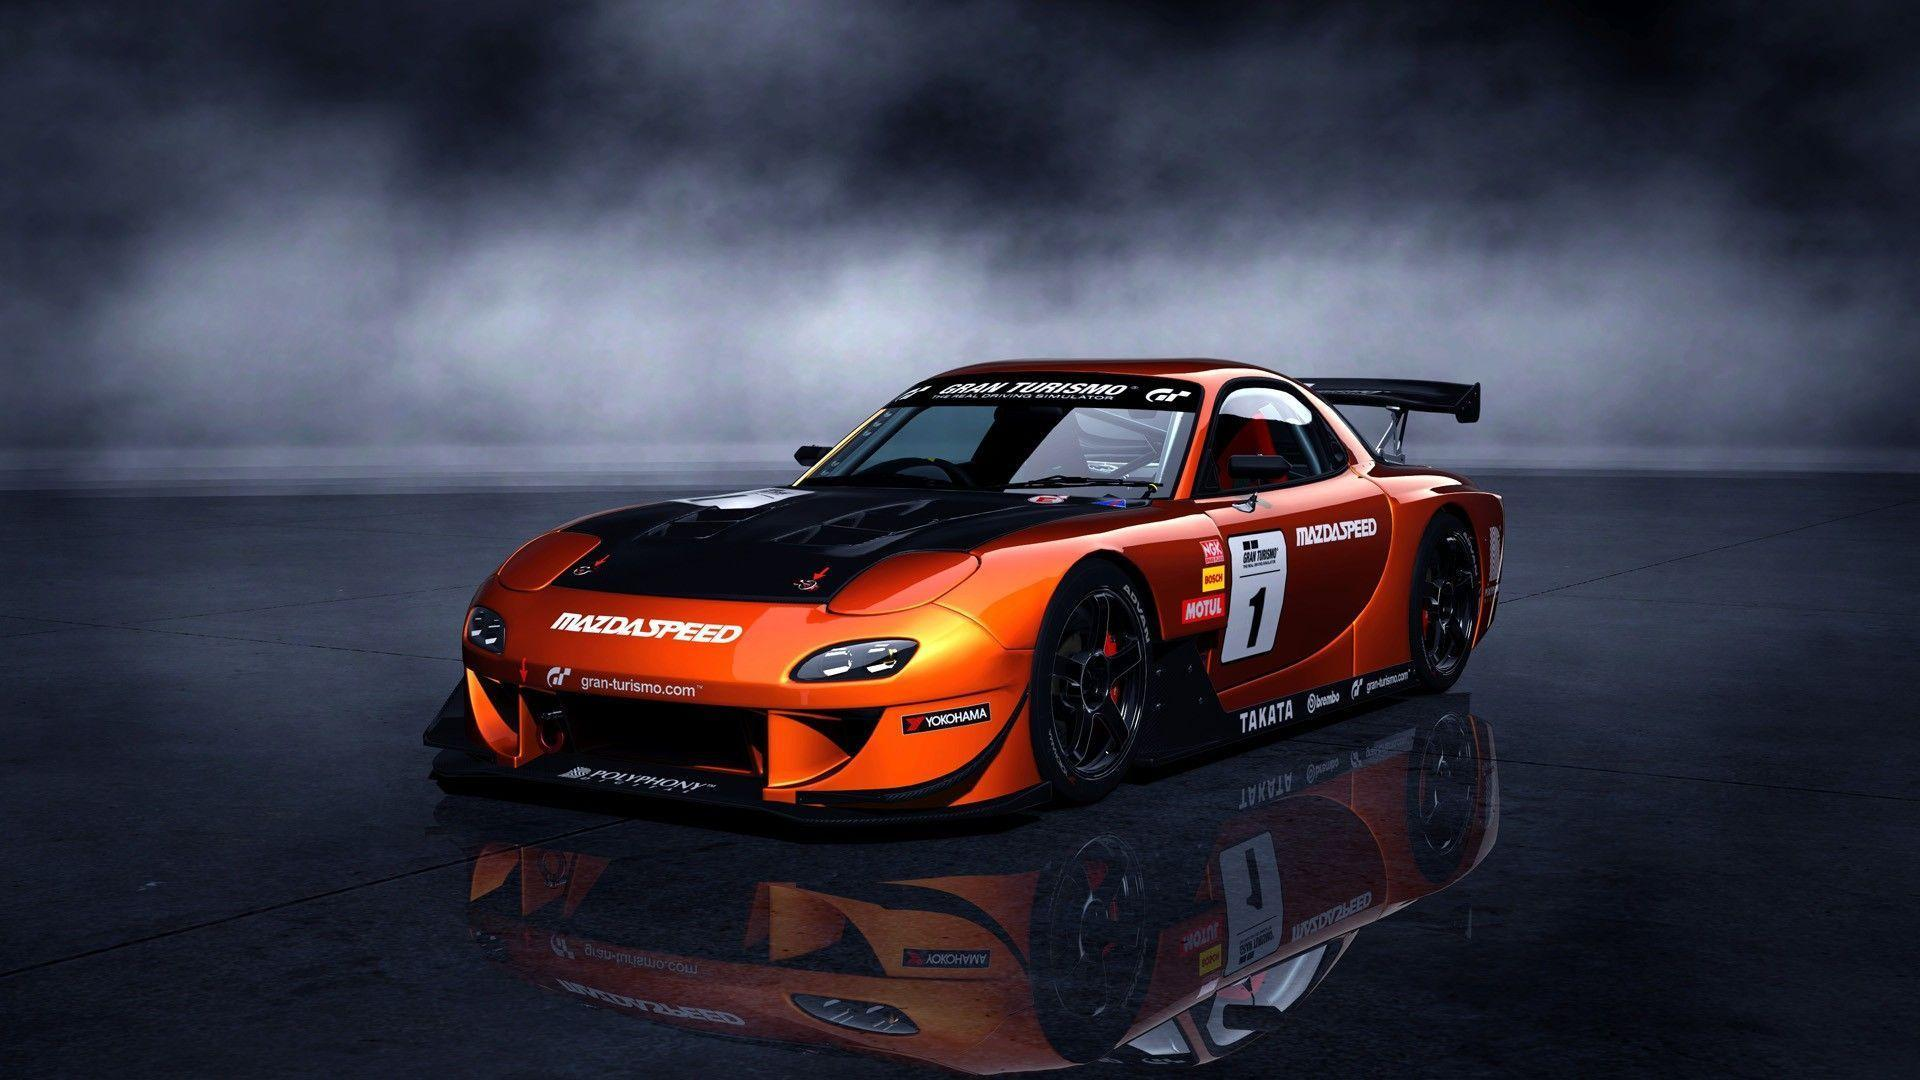 Mazda RX-7 Wallpapers - Wallpaper Cave